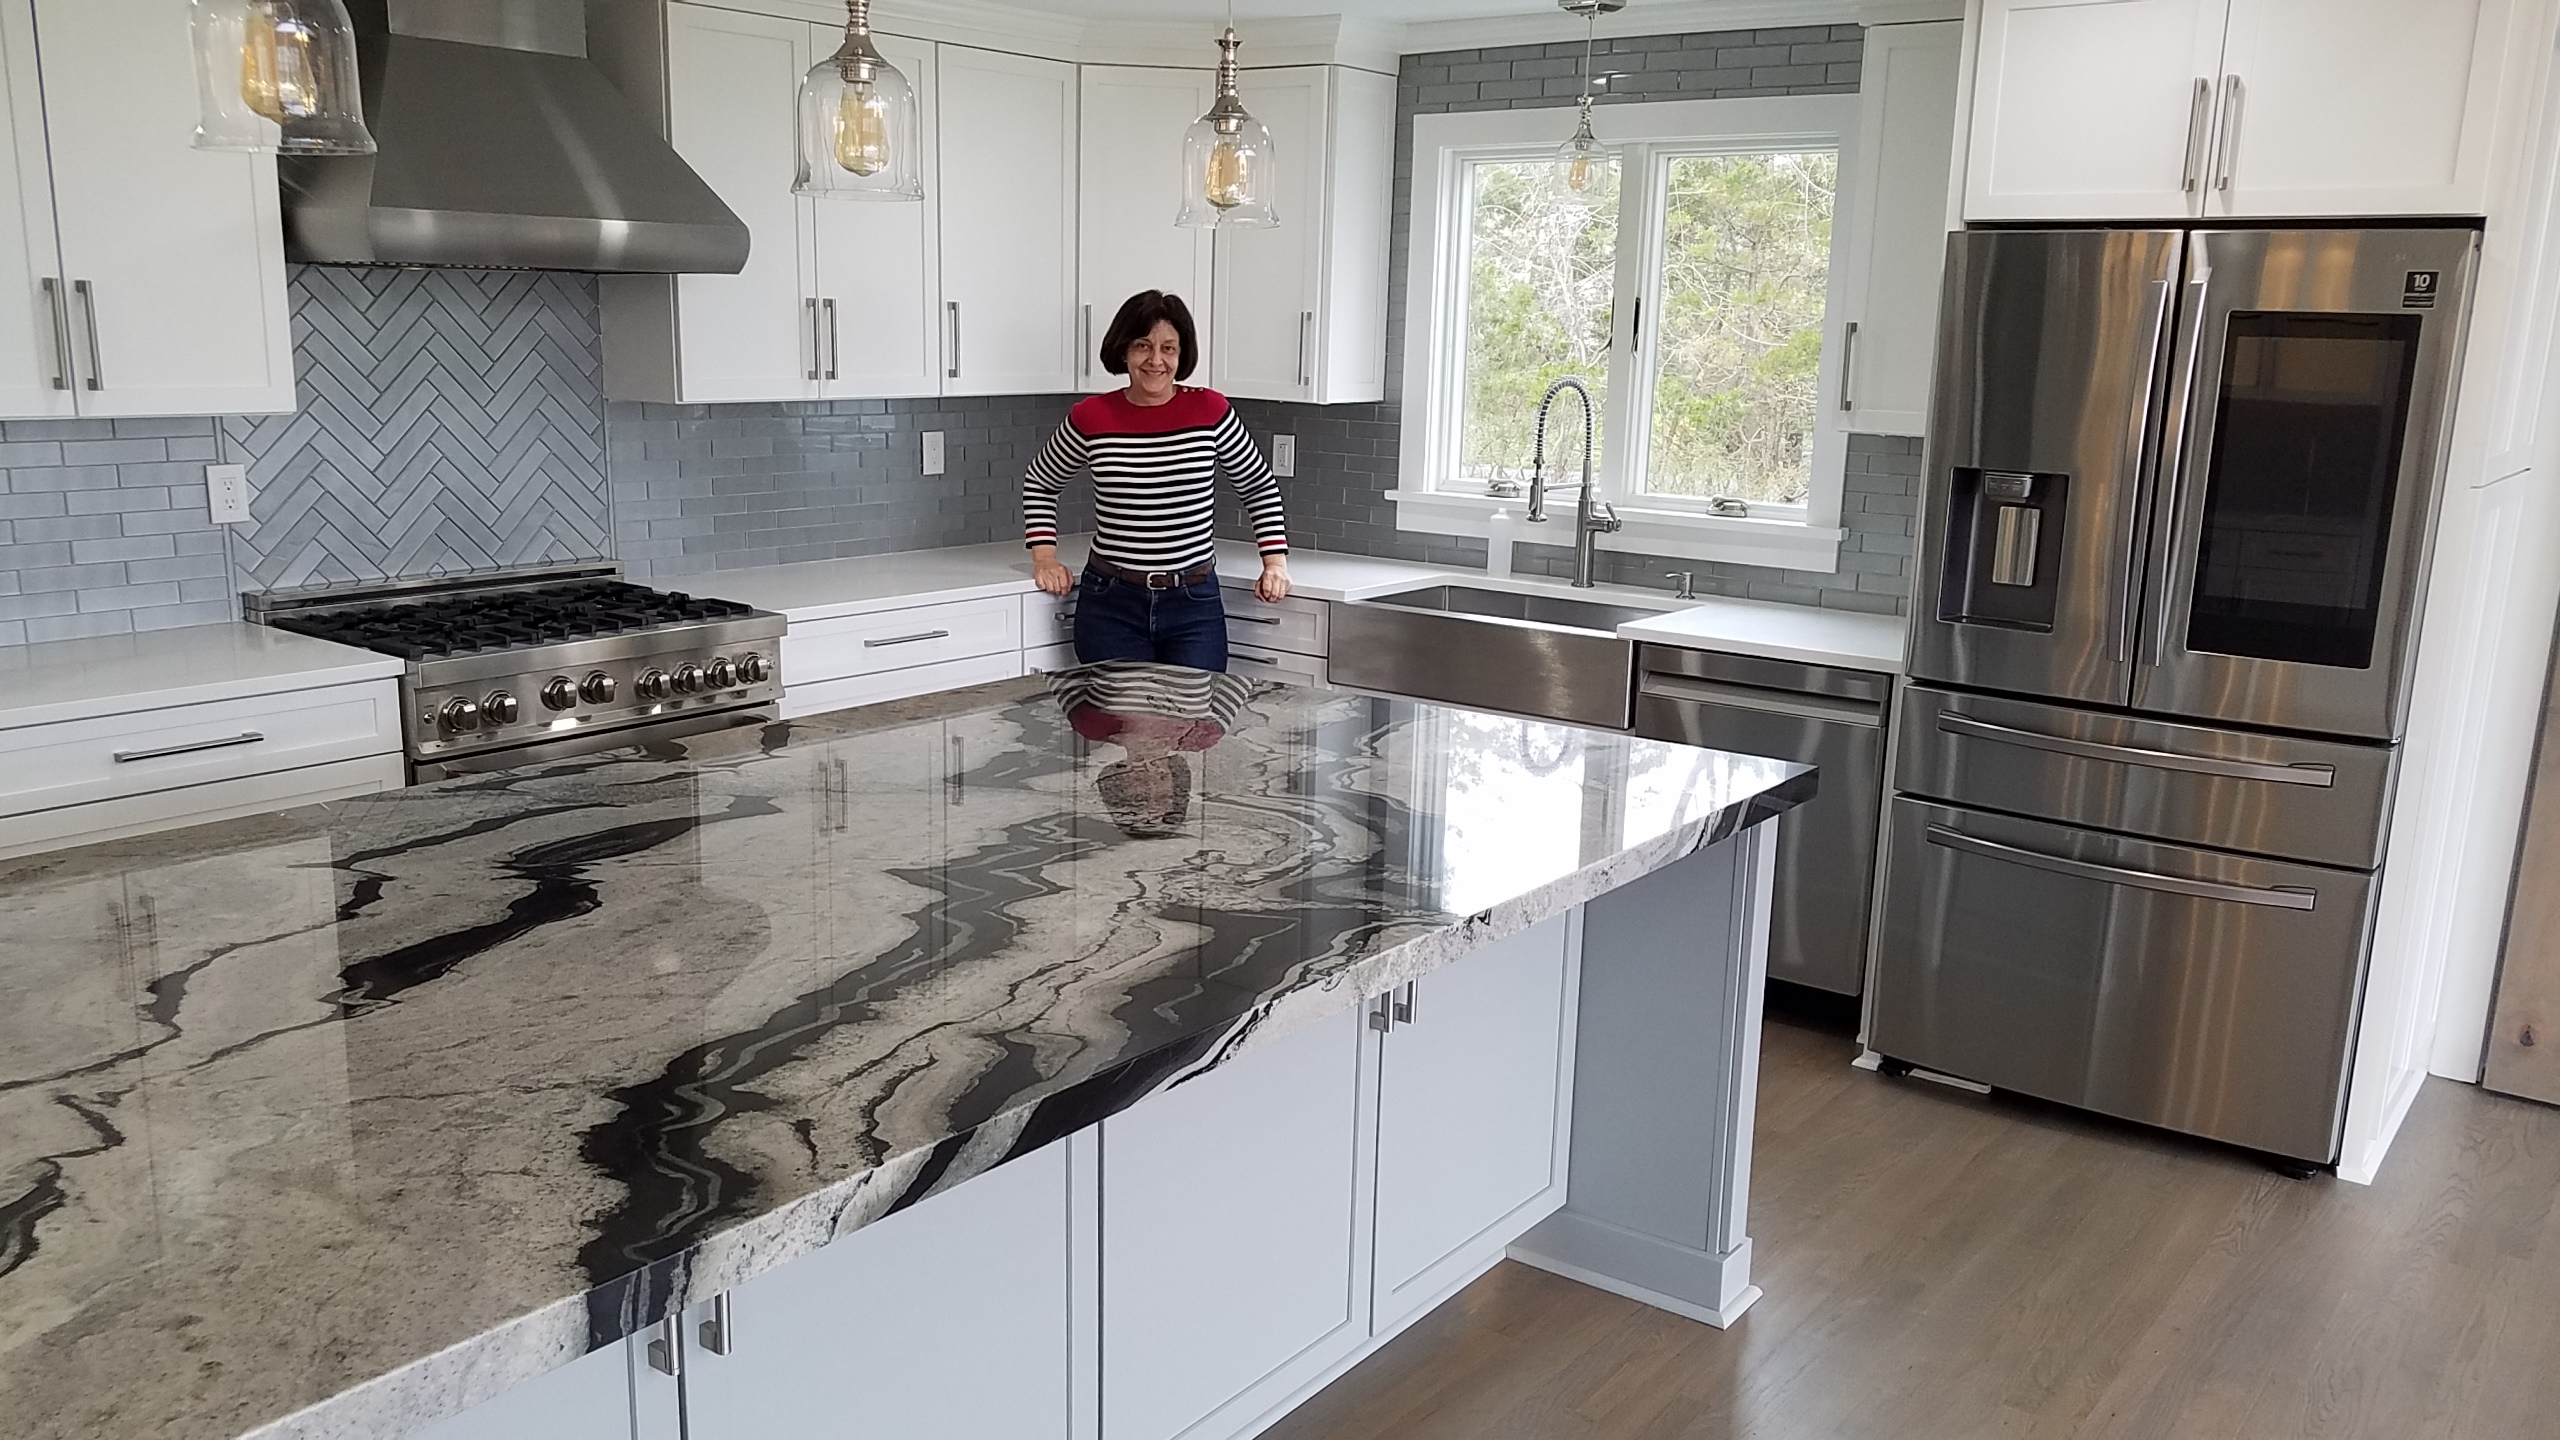 Trumbull Transitional Gray Kitchen, Shaker Cabinets, Snakeskin Granite Countertops